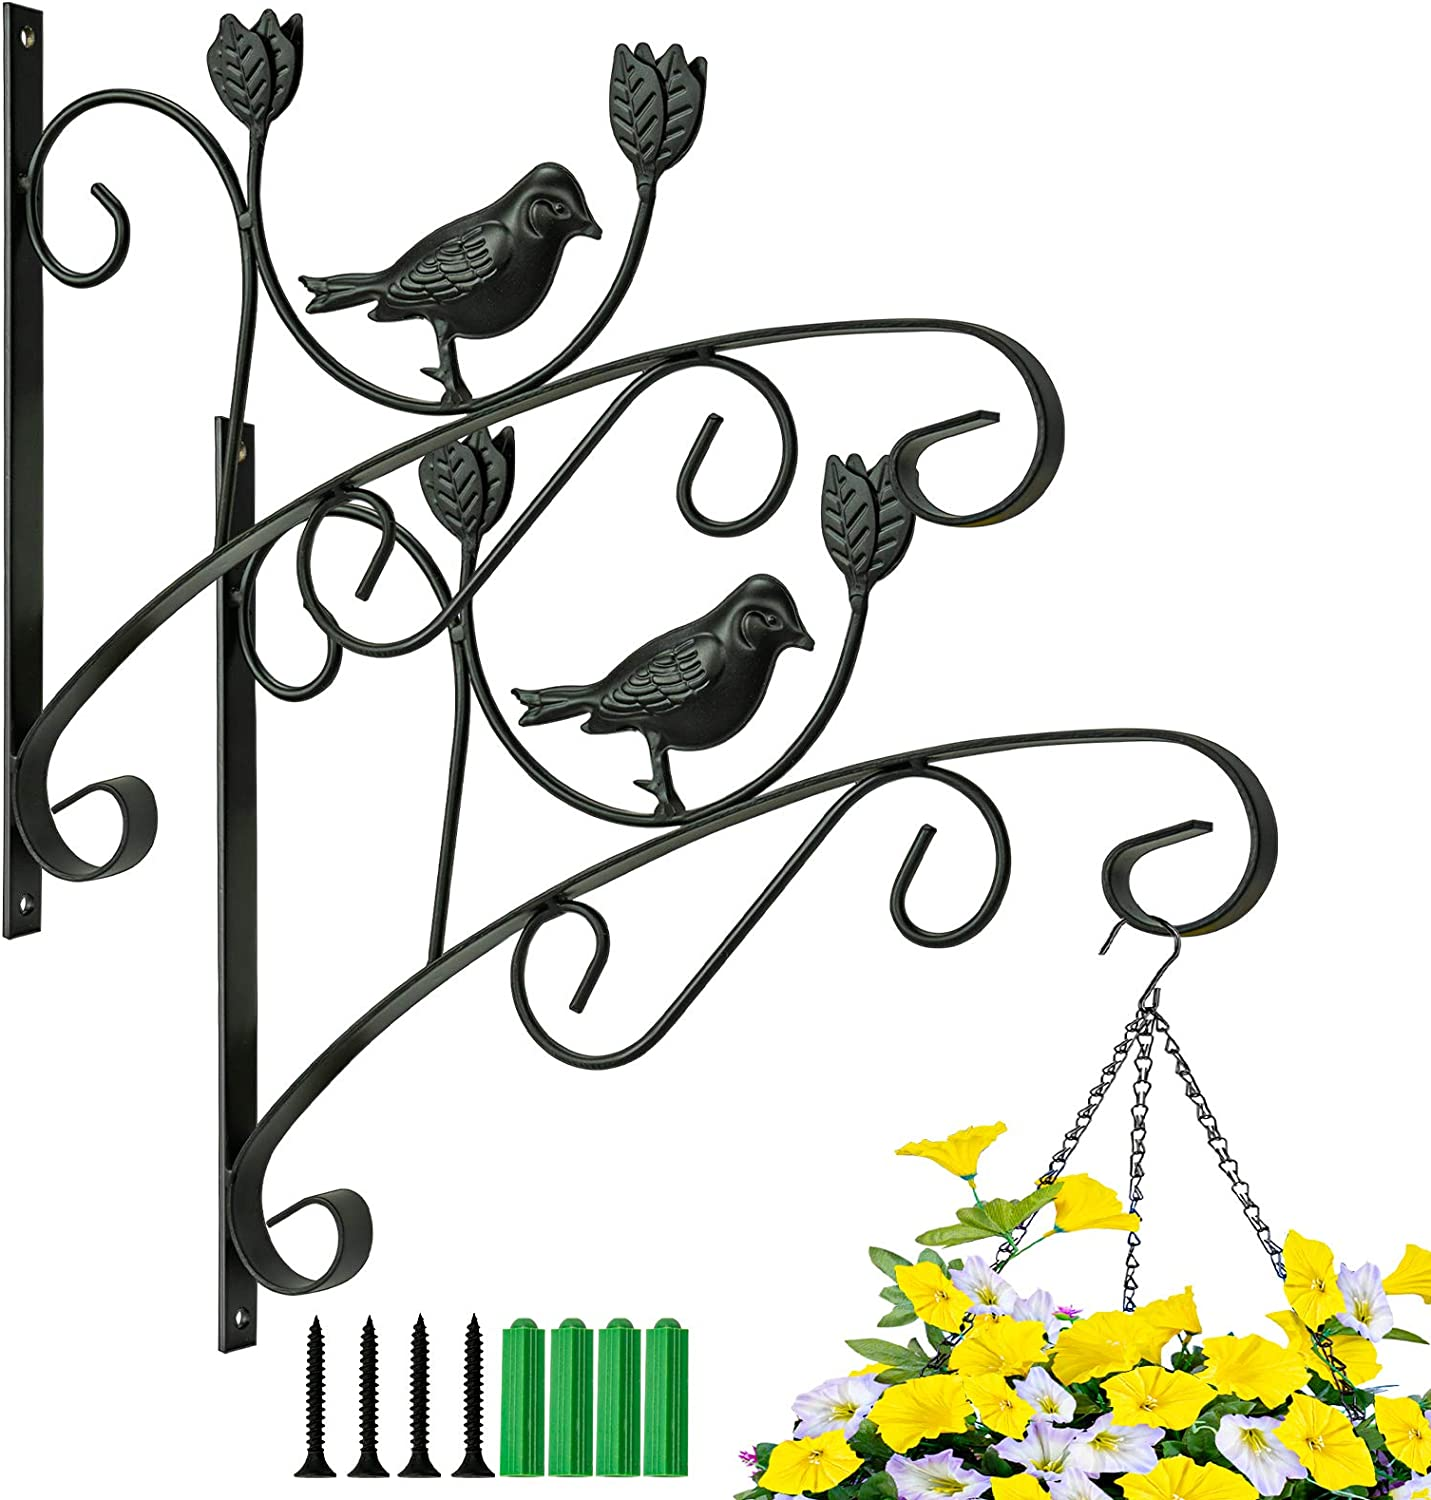 Kingbuy Wall Special sale item Fort Worth Mall Plant Hanger Iron Hook Flower for Hanging Bracket B